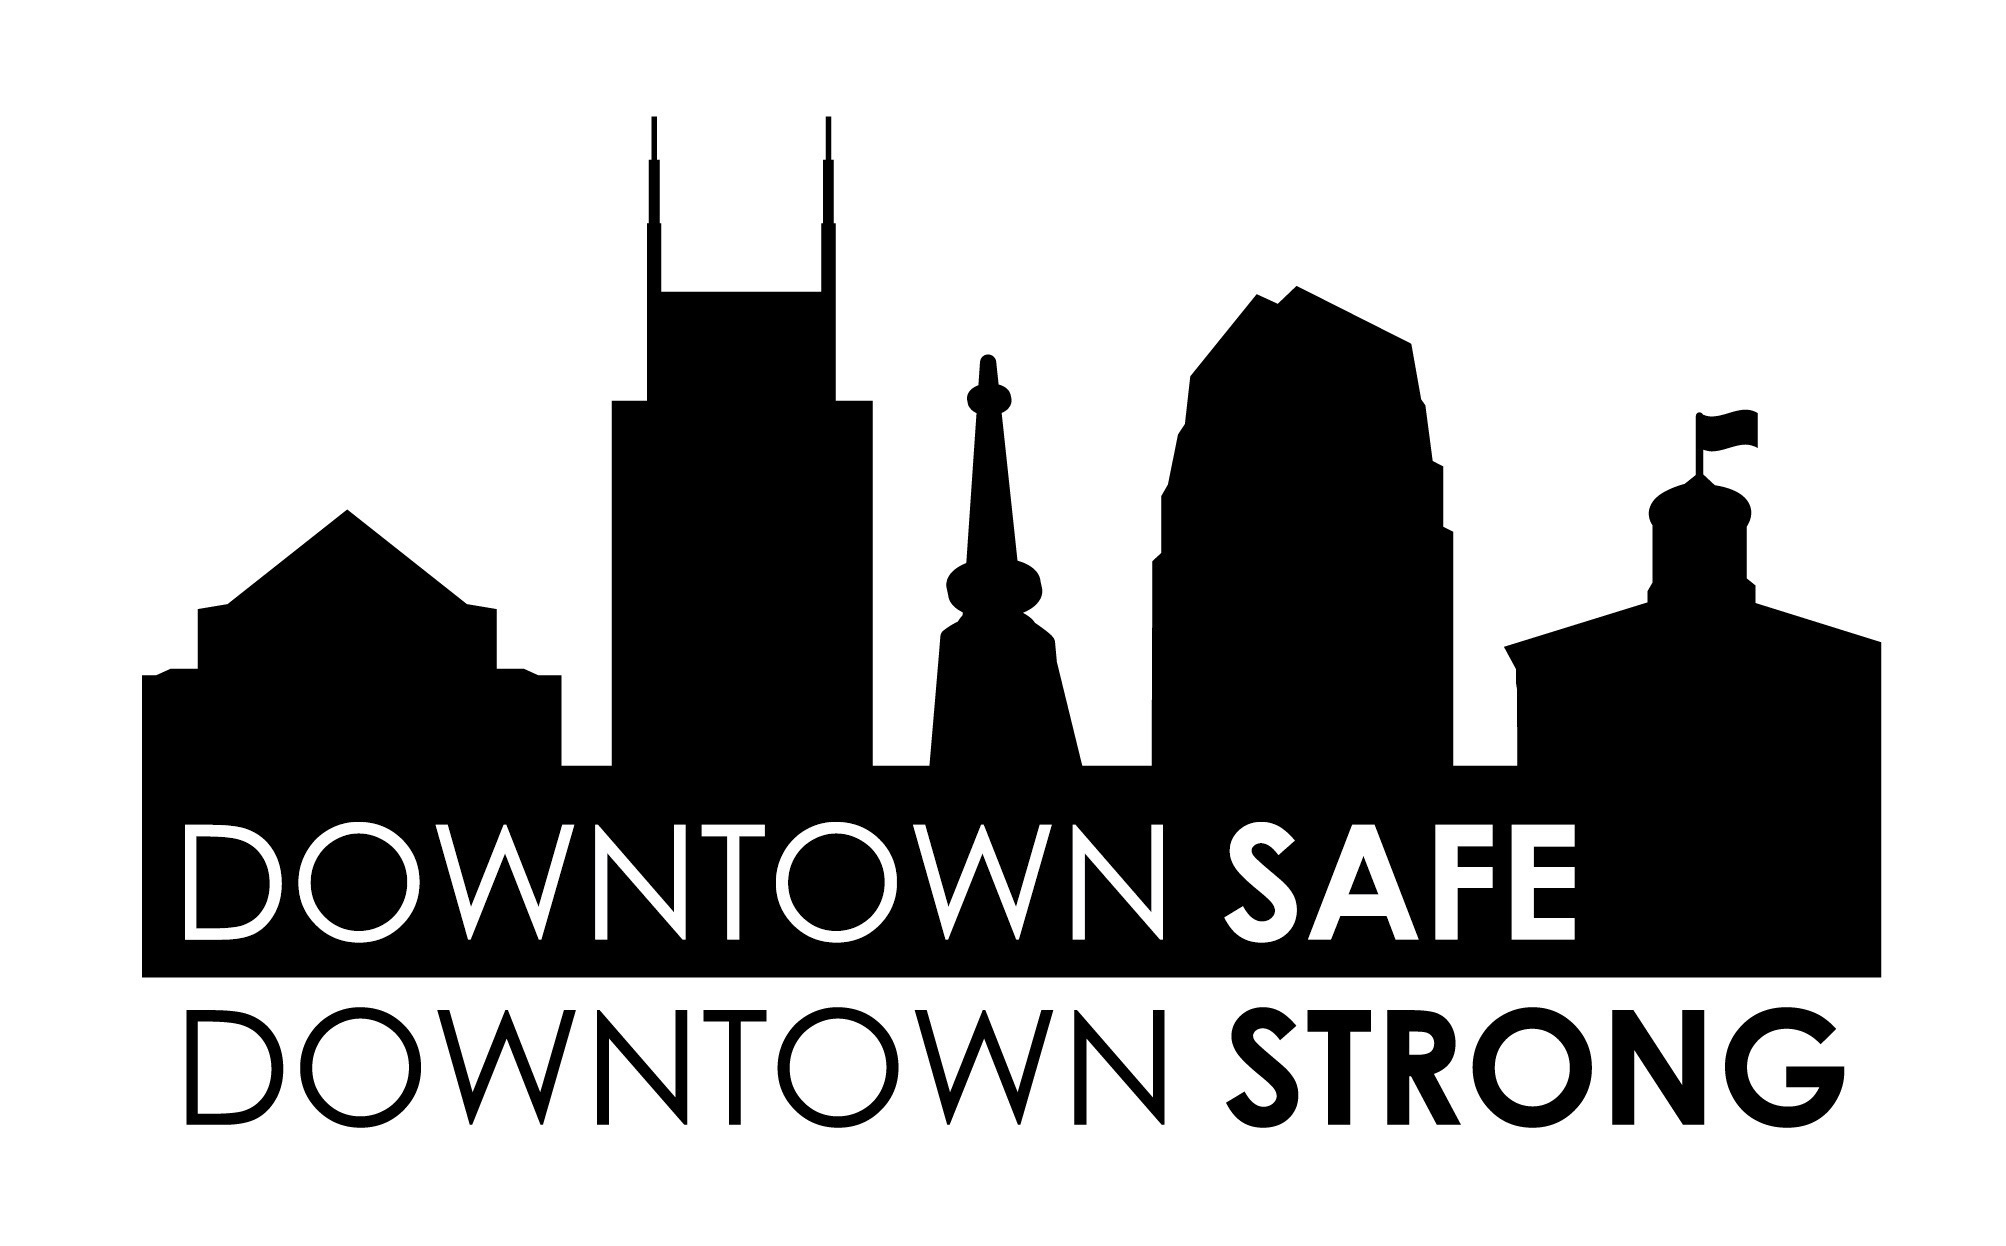 Downtown Safe Downtown Strong